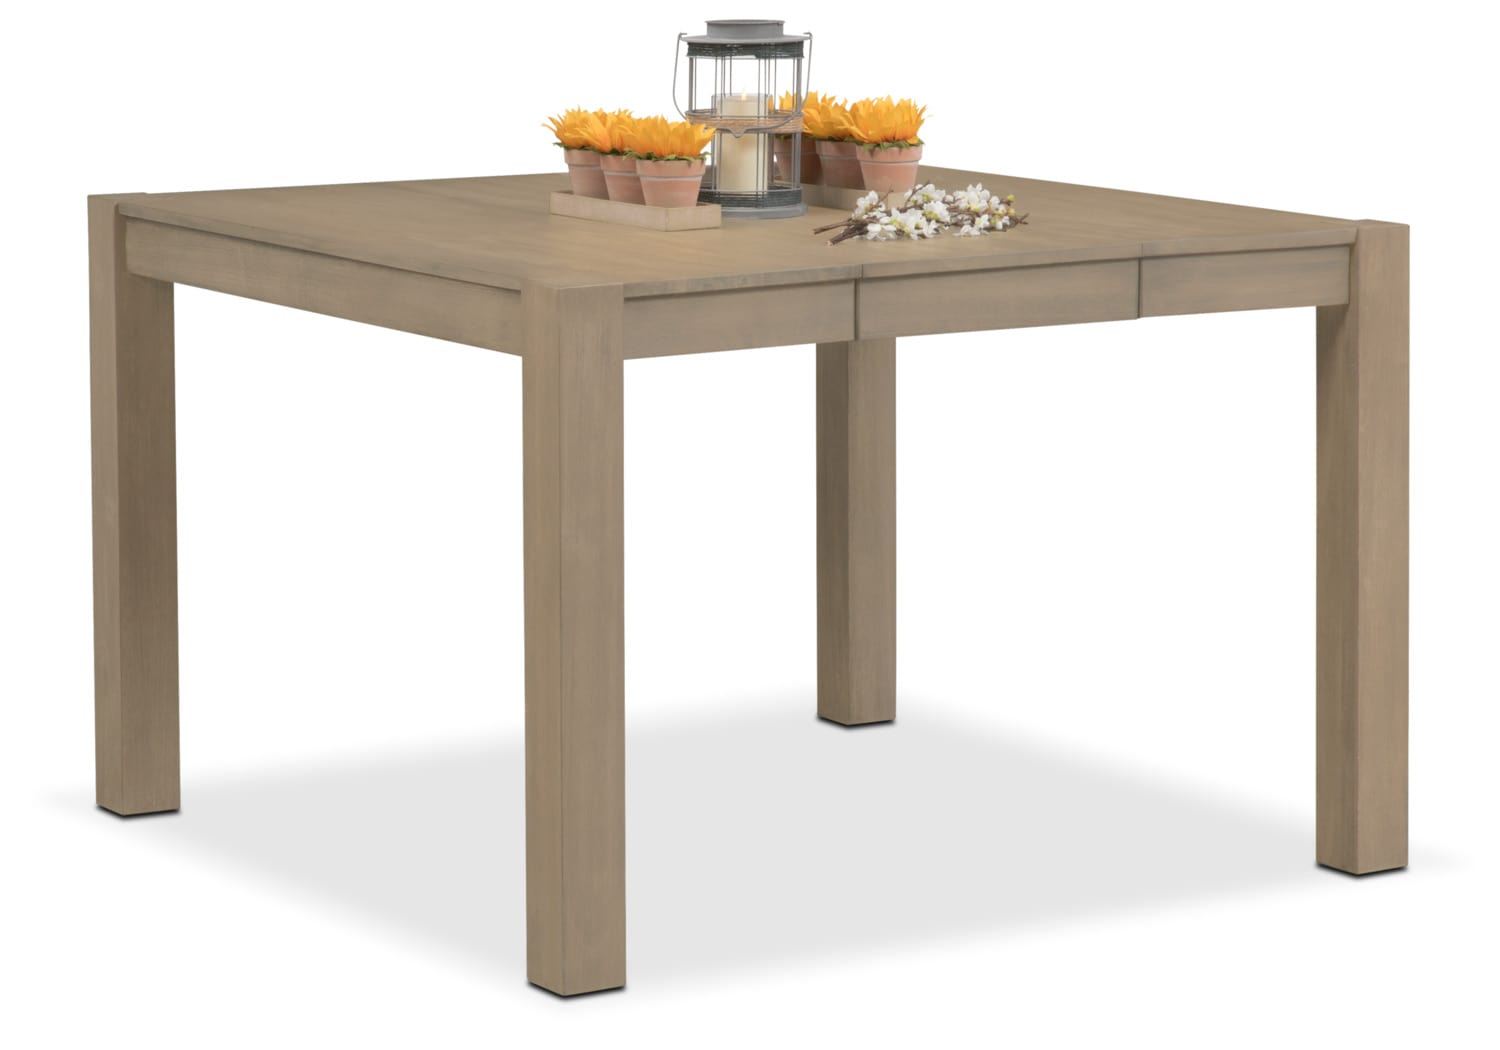 Dining Room Furniture - Tribeca Counter-Height Table